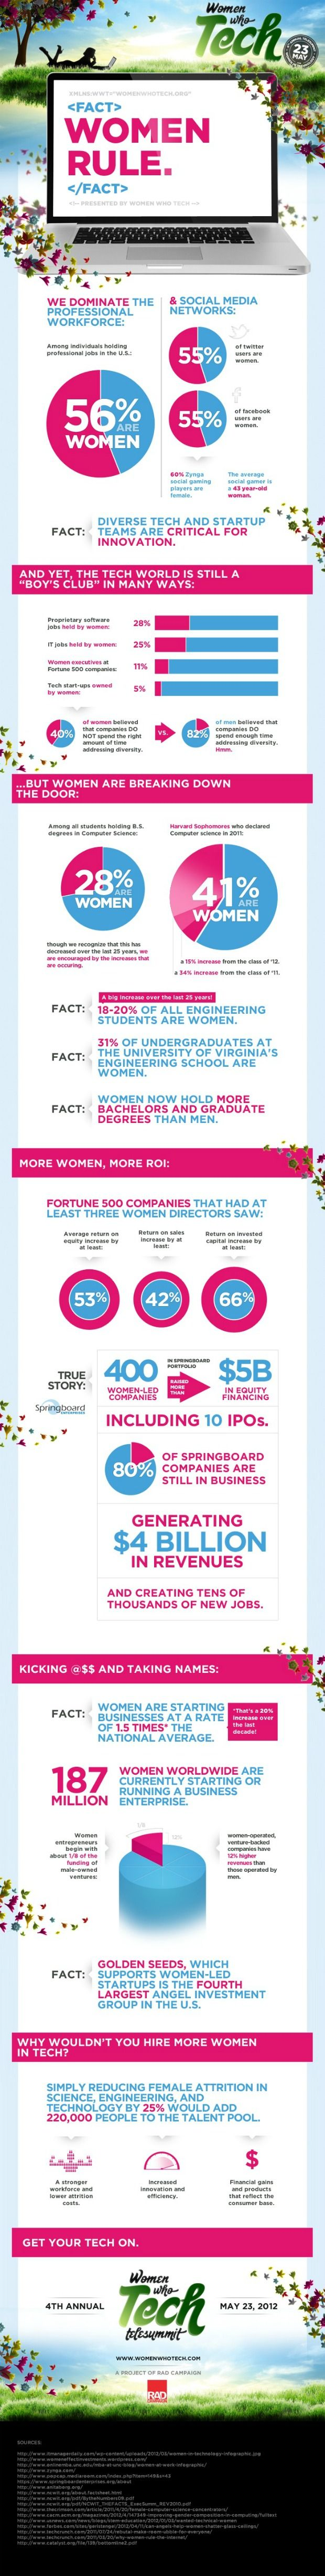 Can Tech Companies Continue To Innovate With No Women At The Table? | Fast Company